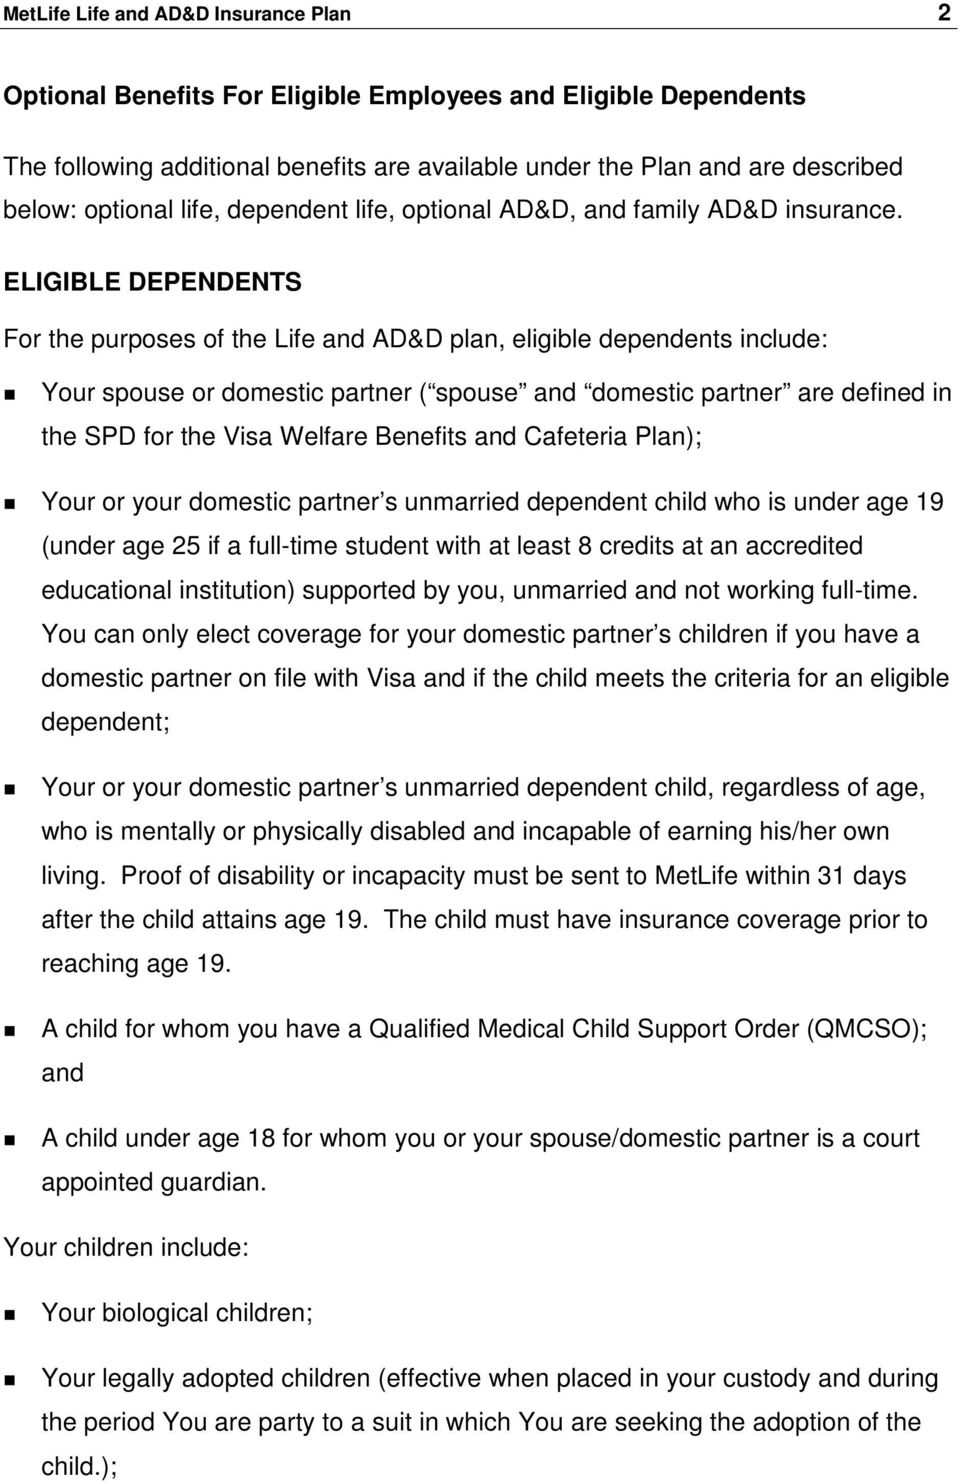 ELIGIBLE DEPENDENTS For the purposes of the Life and AD&D plan, eligible dependents include: Your spouse or domestic partner ( spouse and domestic partner are defined in the SPD for the Visa Welfare